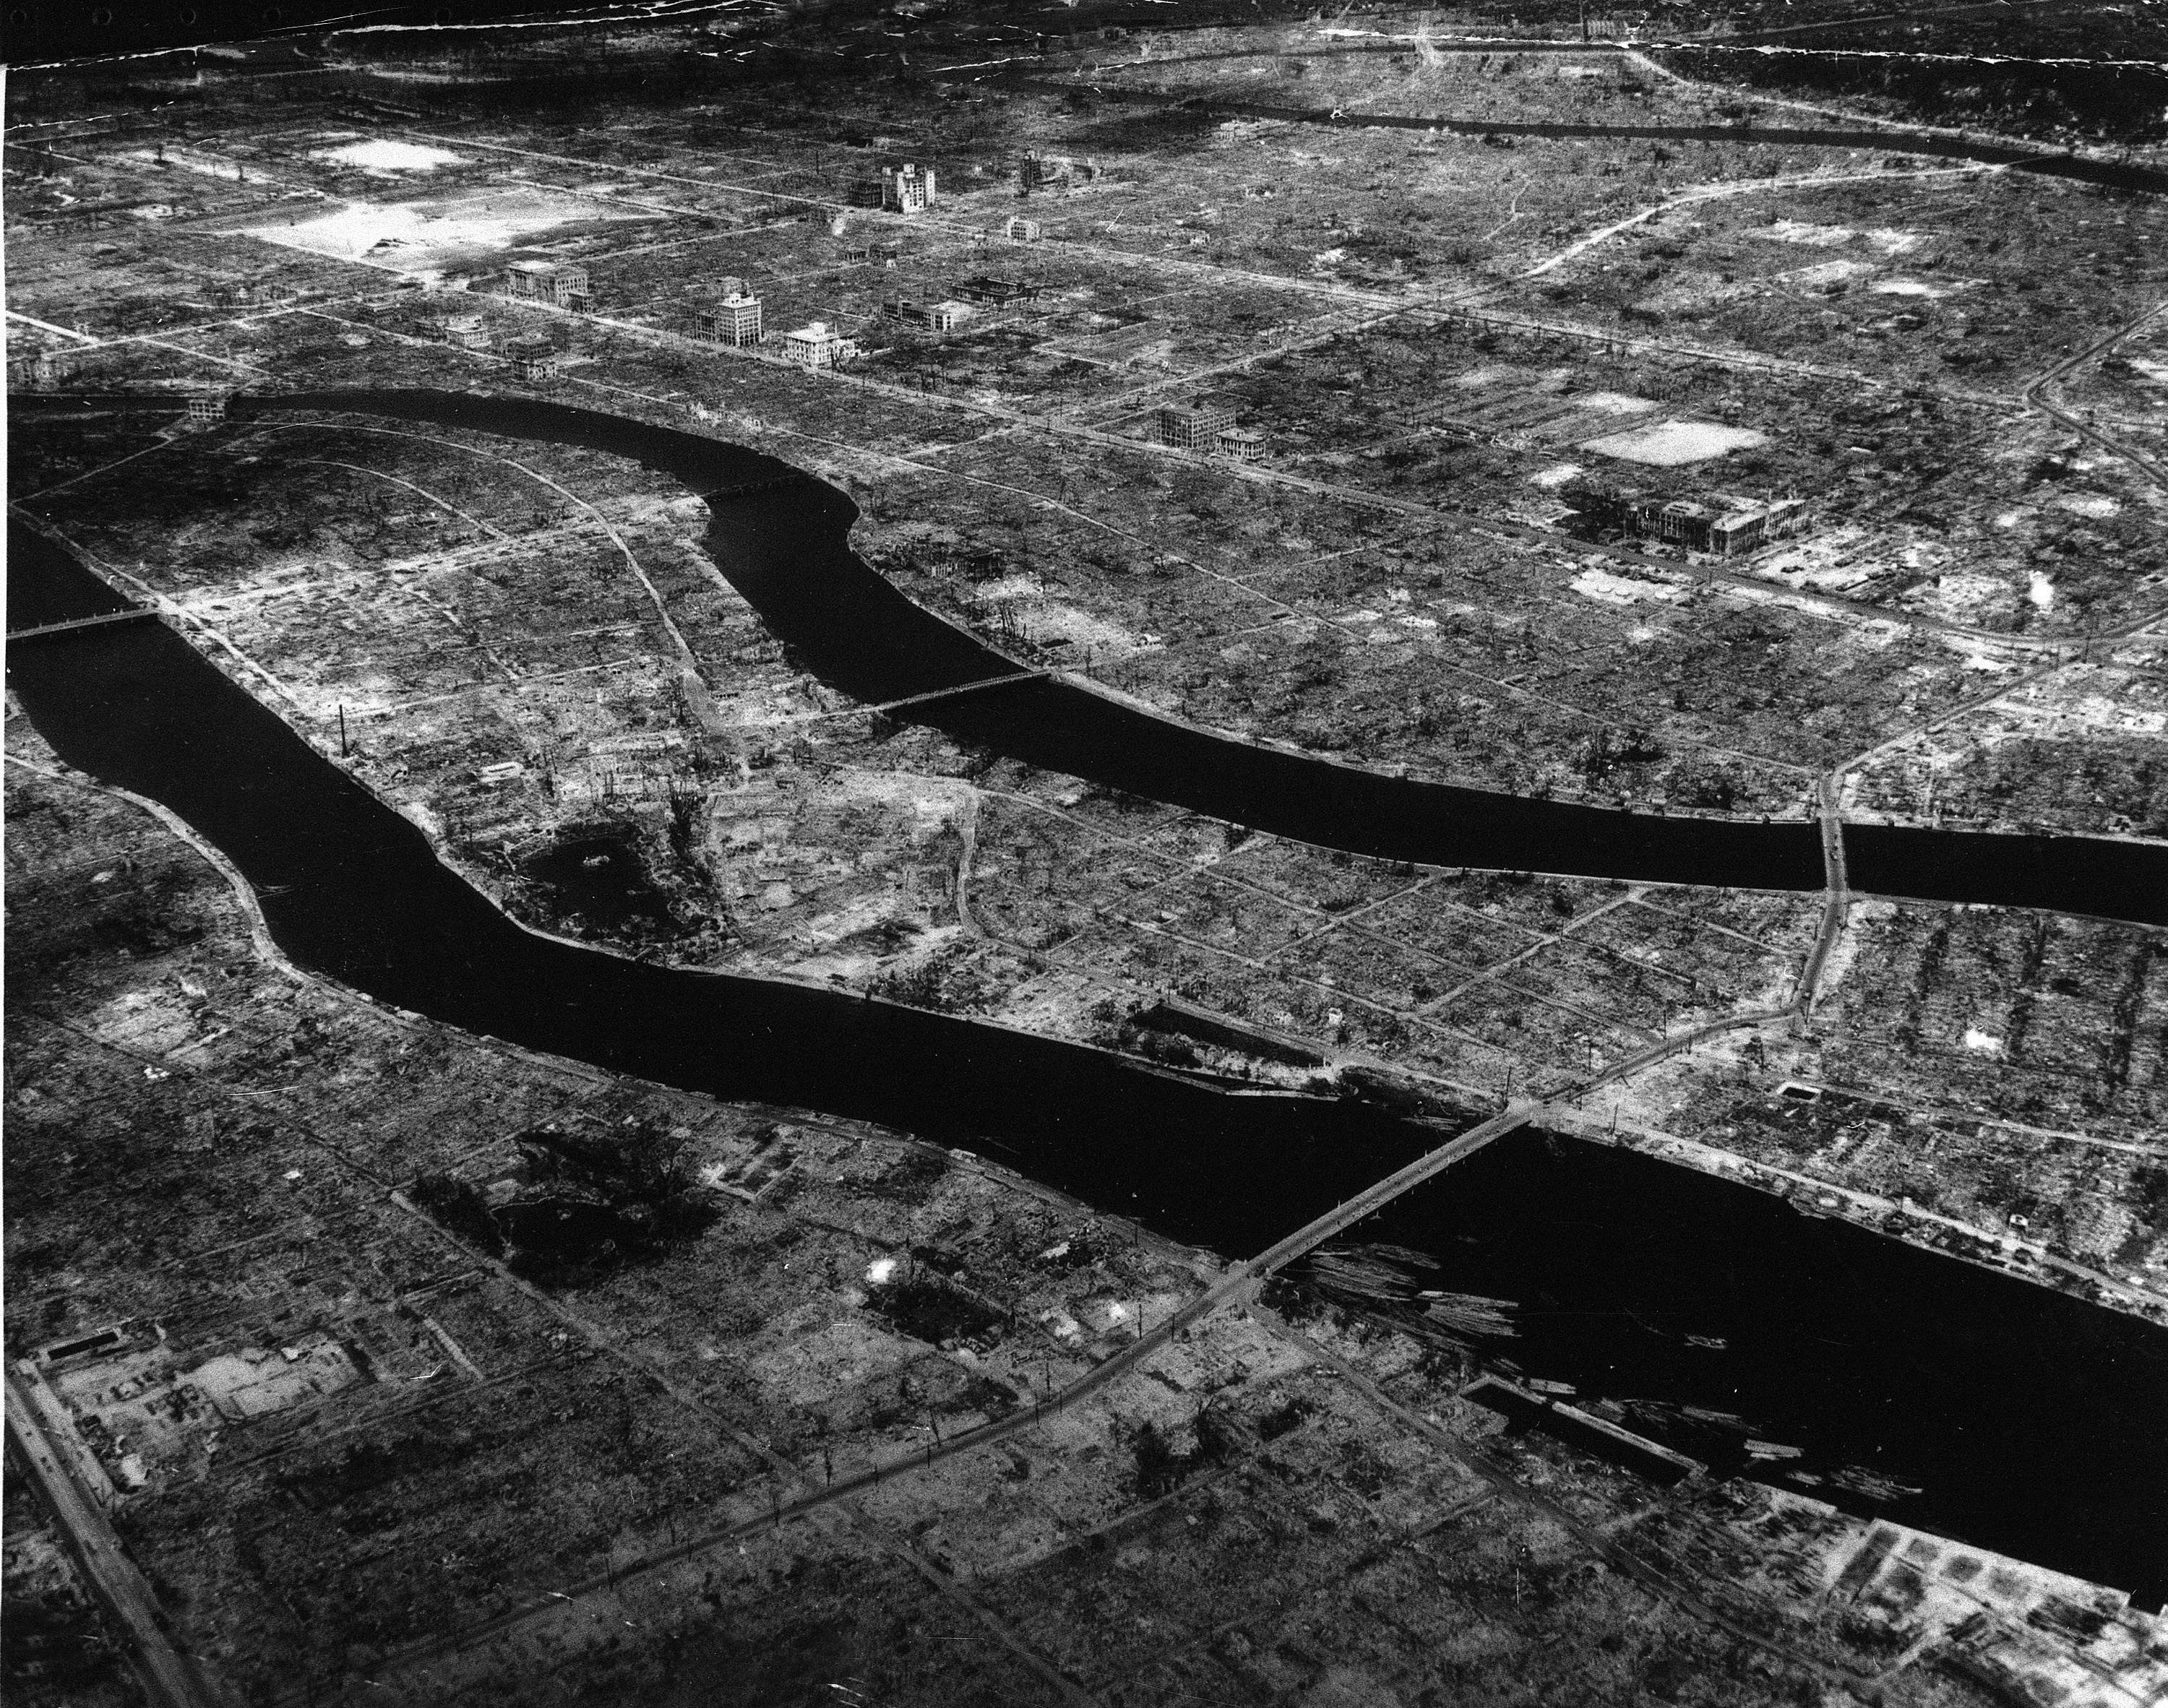 Two rivers cut through a desolate landscape where a city once stood.